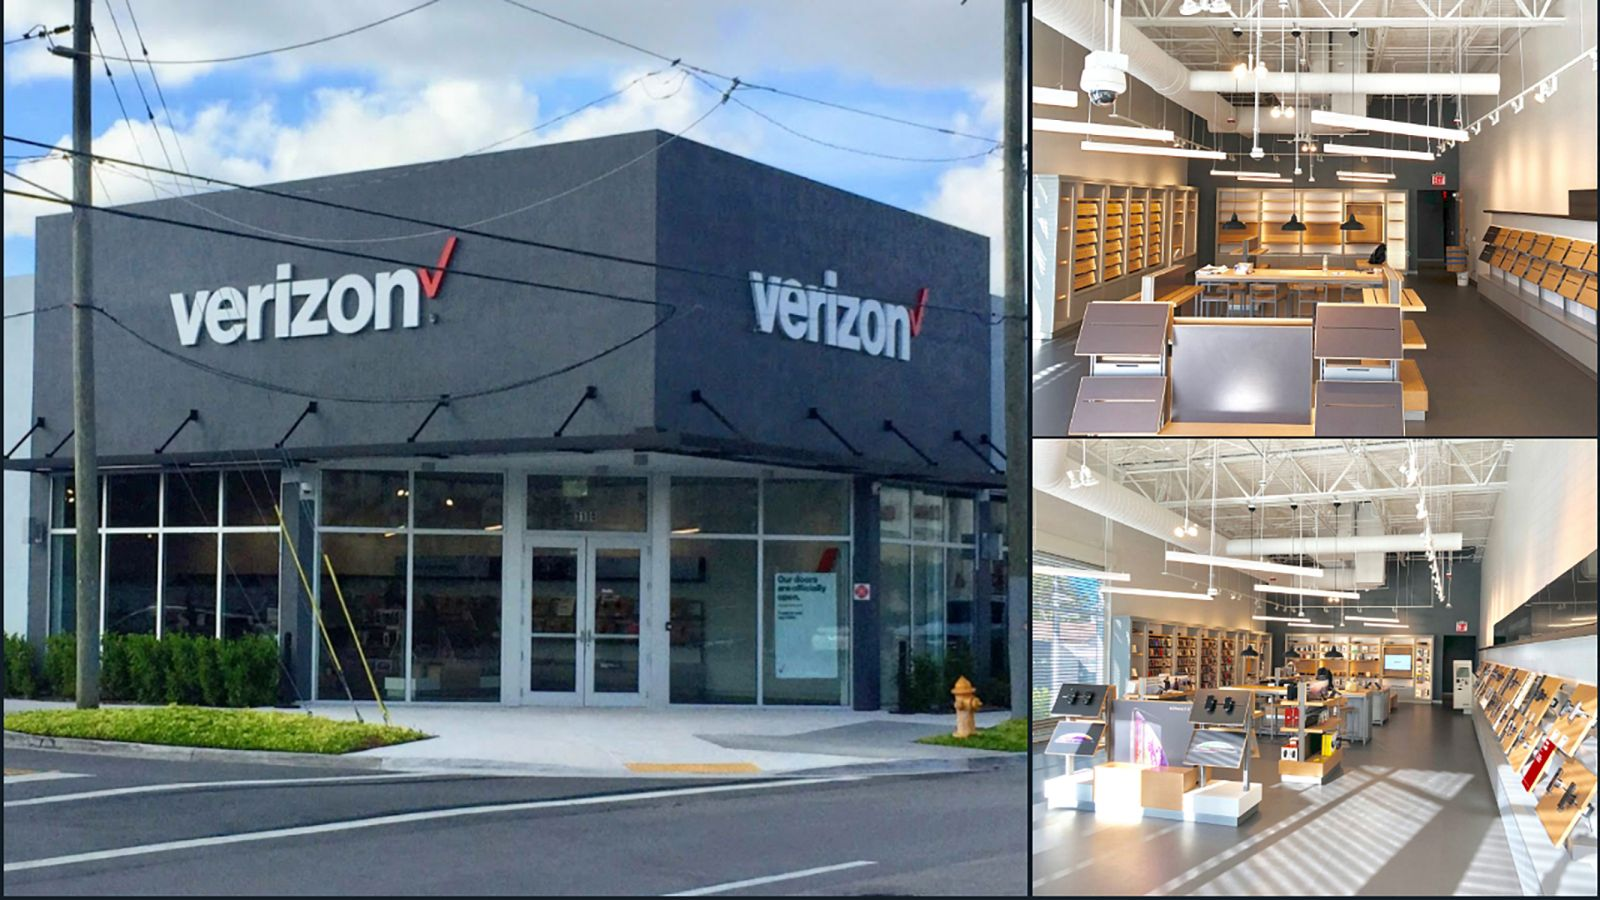 image of Verizon Store Interior Build-Out of new Verizon Wireless Retail Store in Midtown, Miami, Fl. Included all M/E/P, framing, drywall, ceiling, flooring, millwork and other specialty finishes